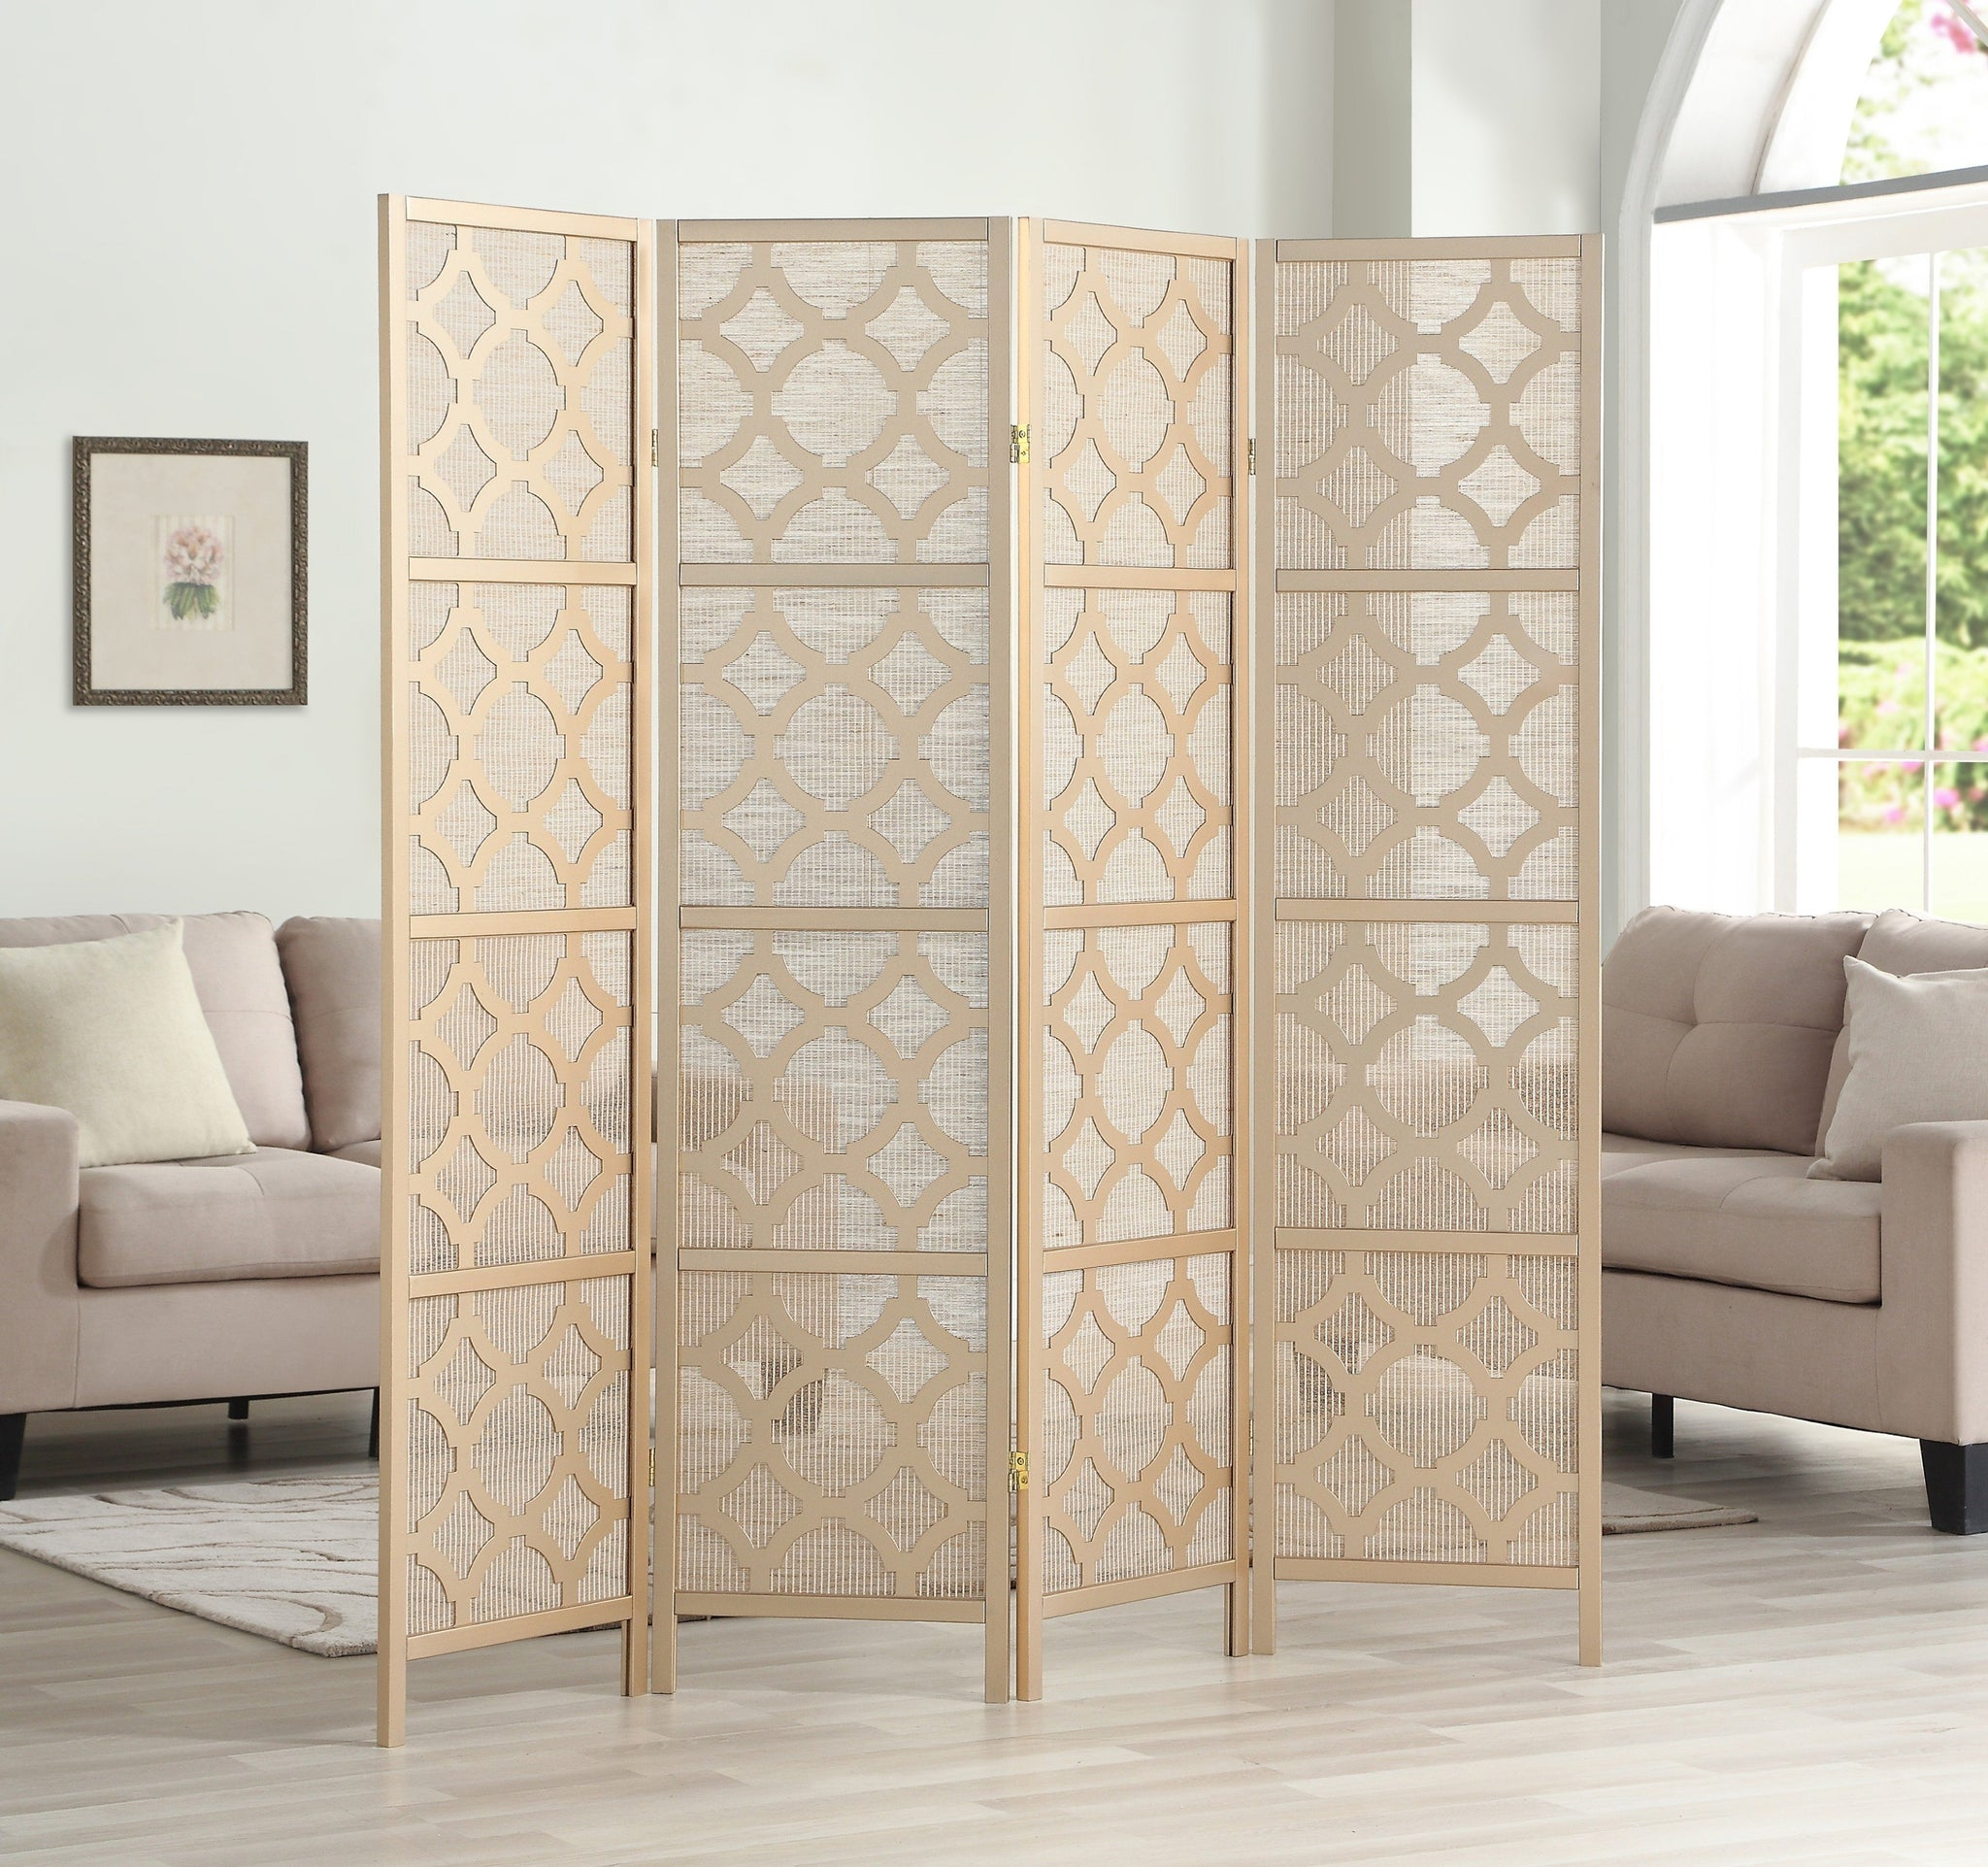 Quarterfoil infused Diamond Design 4-Panel Room Divider, Gold